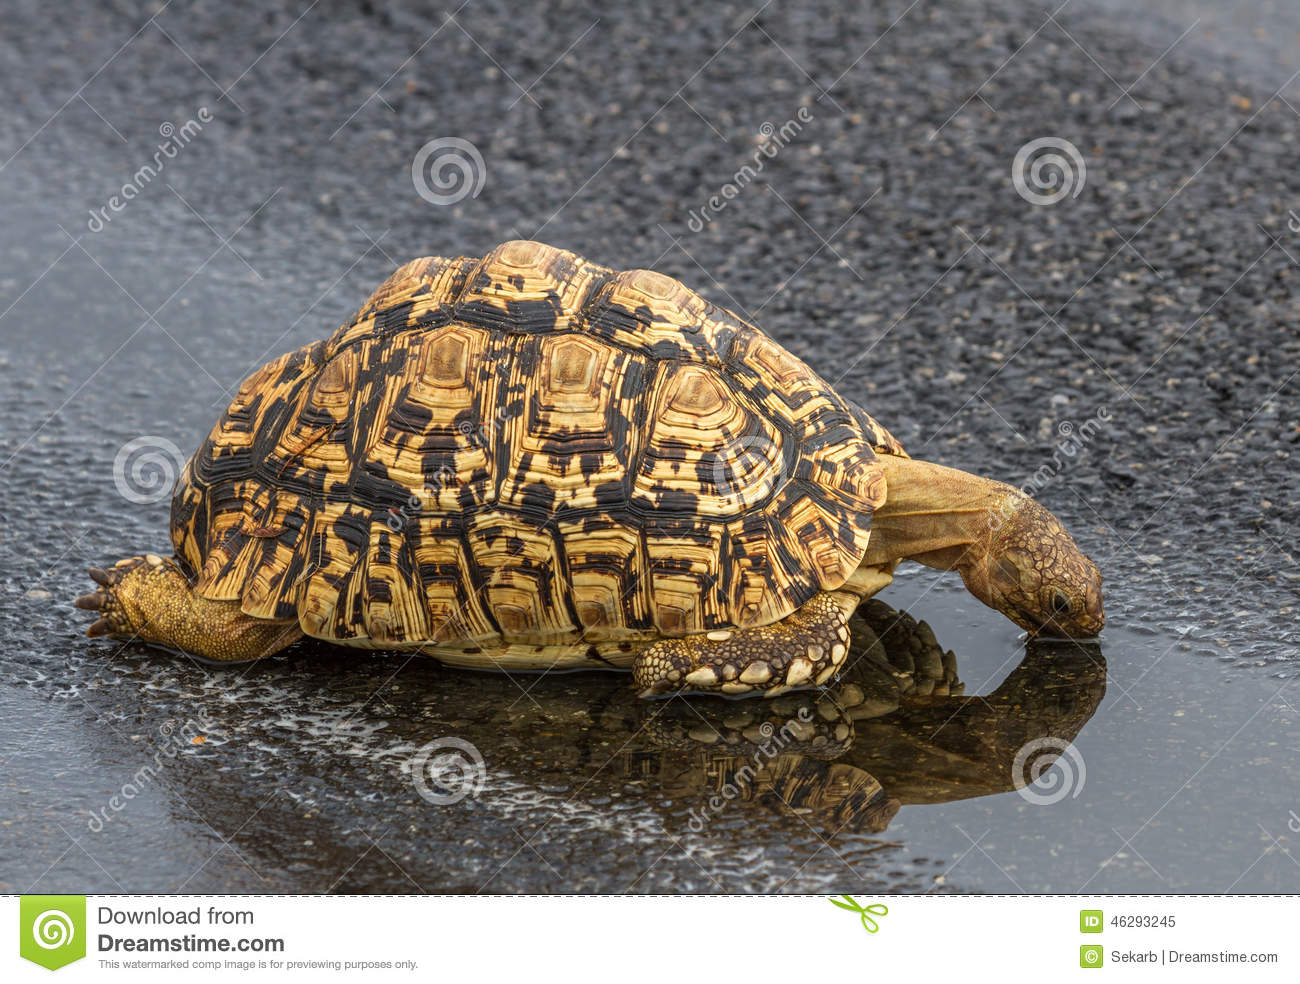 do tortoises drink water